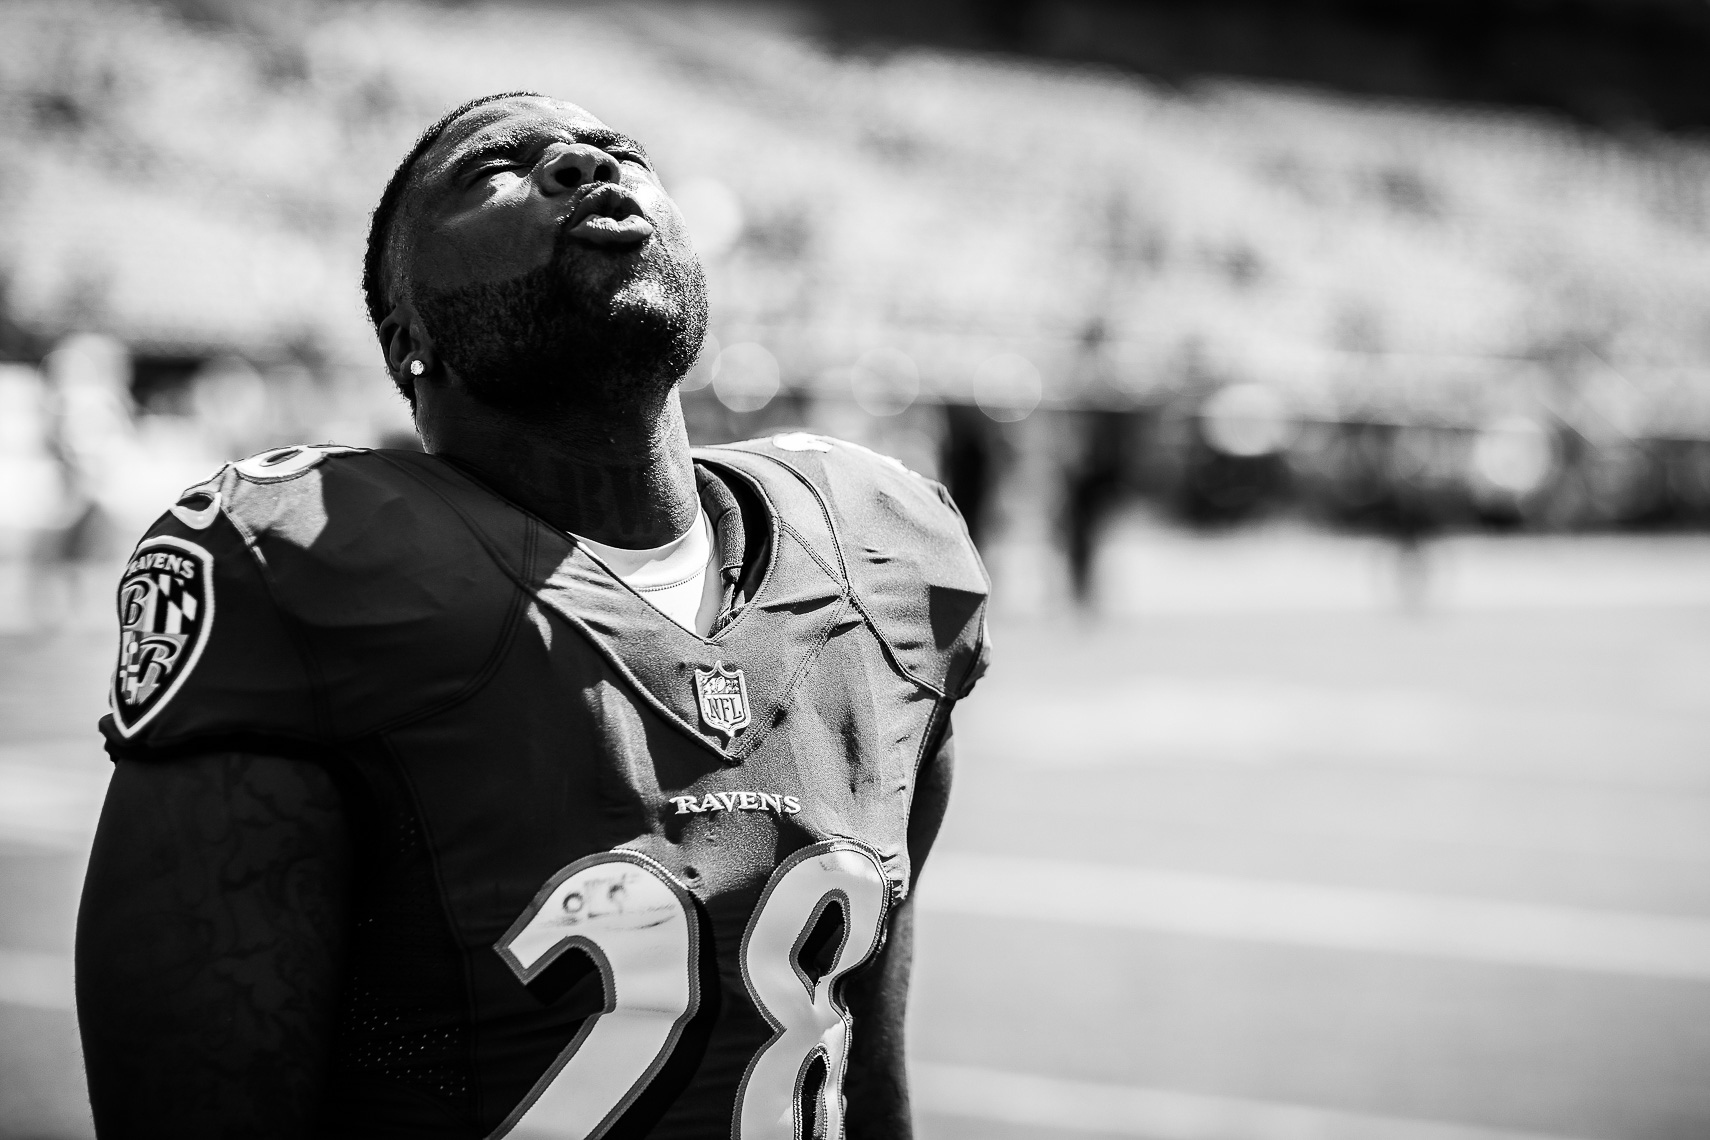 ravens21  NFL Baltimore Ravens photos NFL behind the scenes documentary sports photographer photo of running back Terrance West